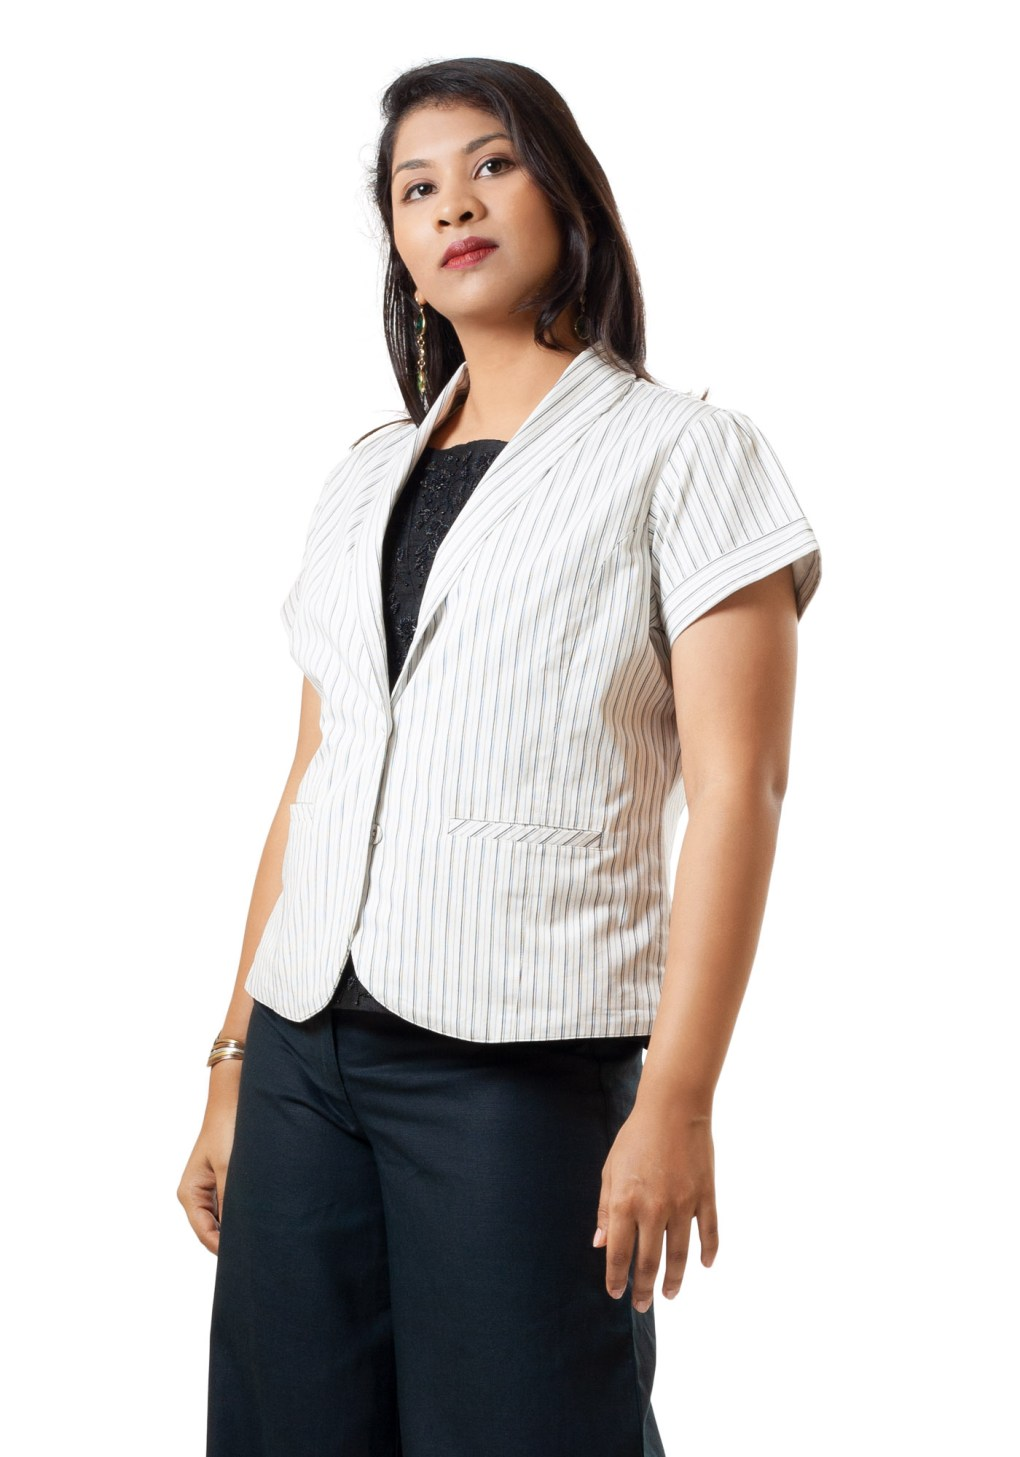 MINC womens high fashion brand Classic Black on White Pinstripes Cotton Summer Jacket